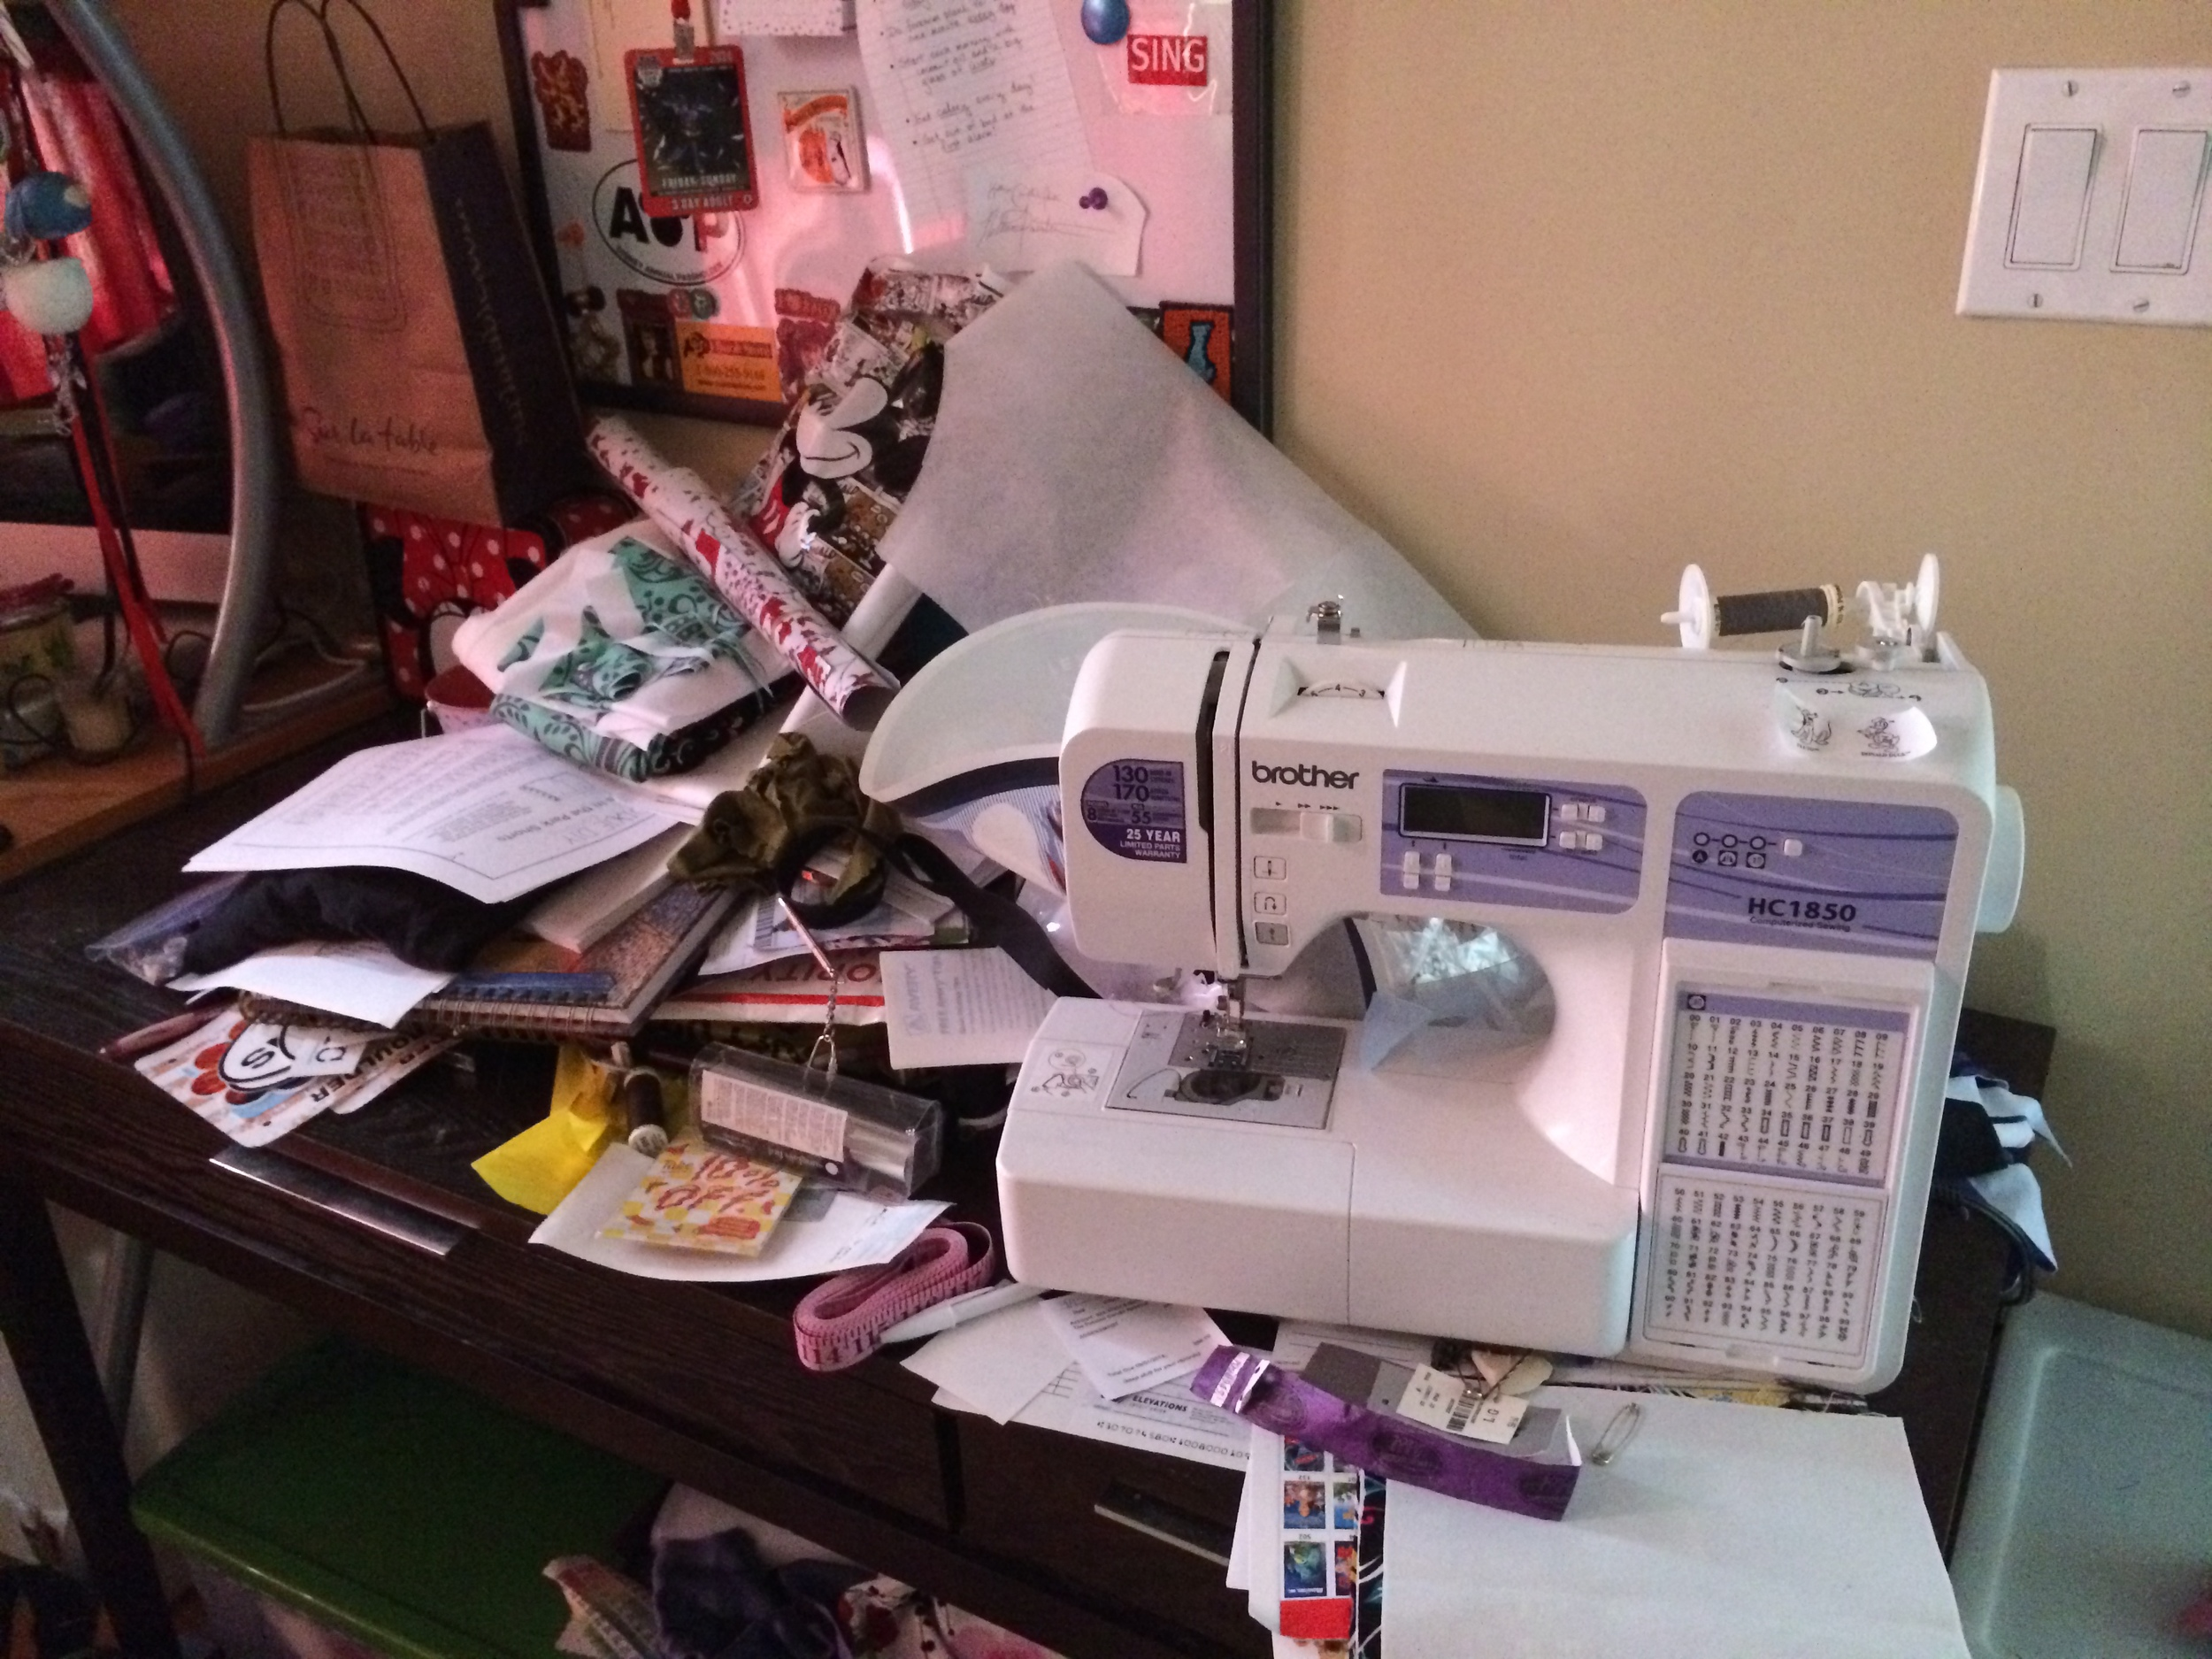 Here is my sewing desk before...YUCK (though in my defense, it was one of the last things I cleaned, so I had been piling stuff on it through the whole process. It